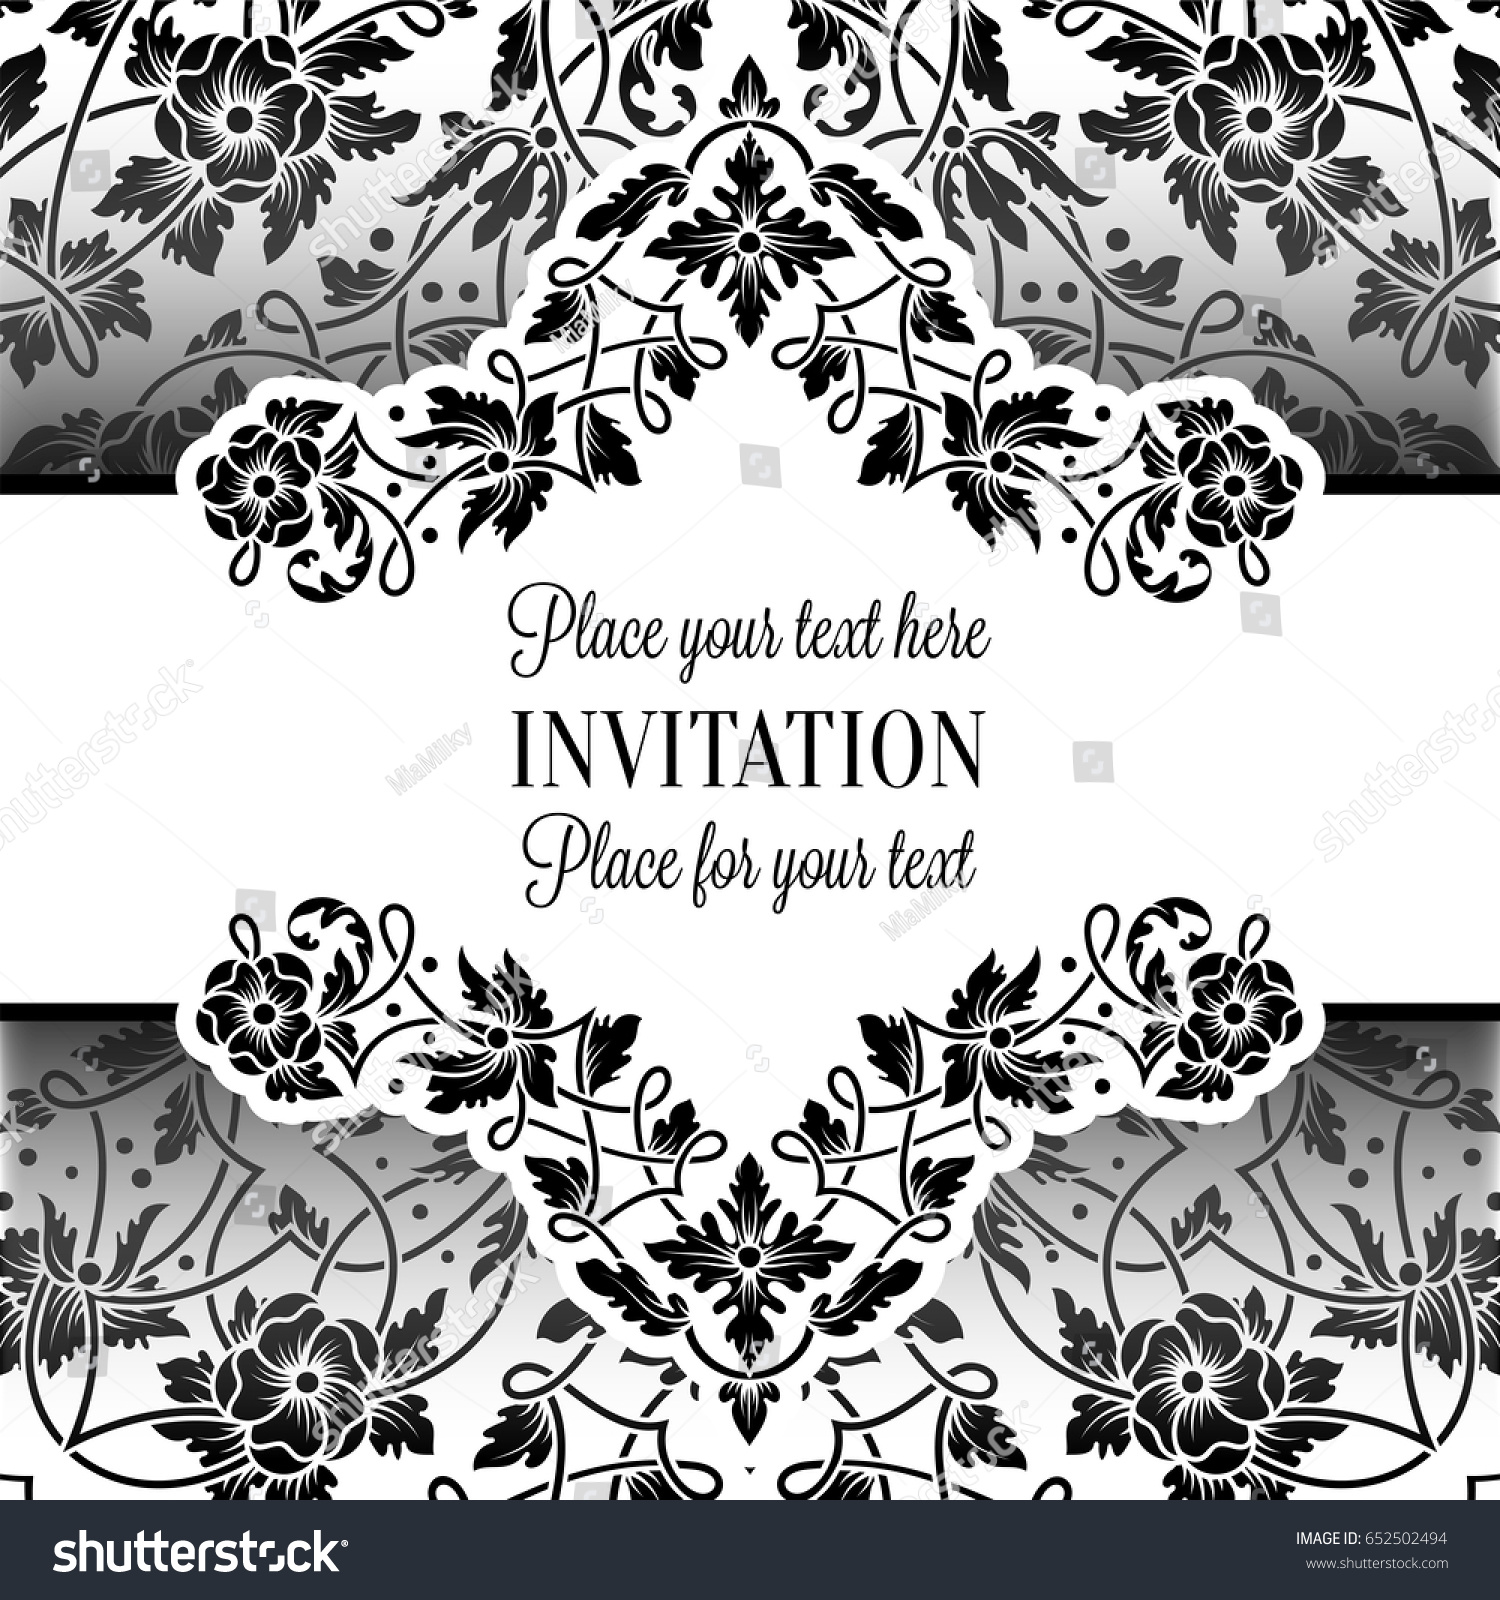 Floral Invitation Card With Antique Luxury Black And White Vintage Frame Ornamental Lacy Background